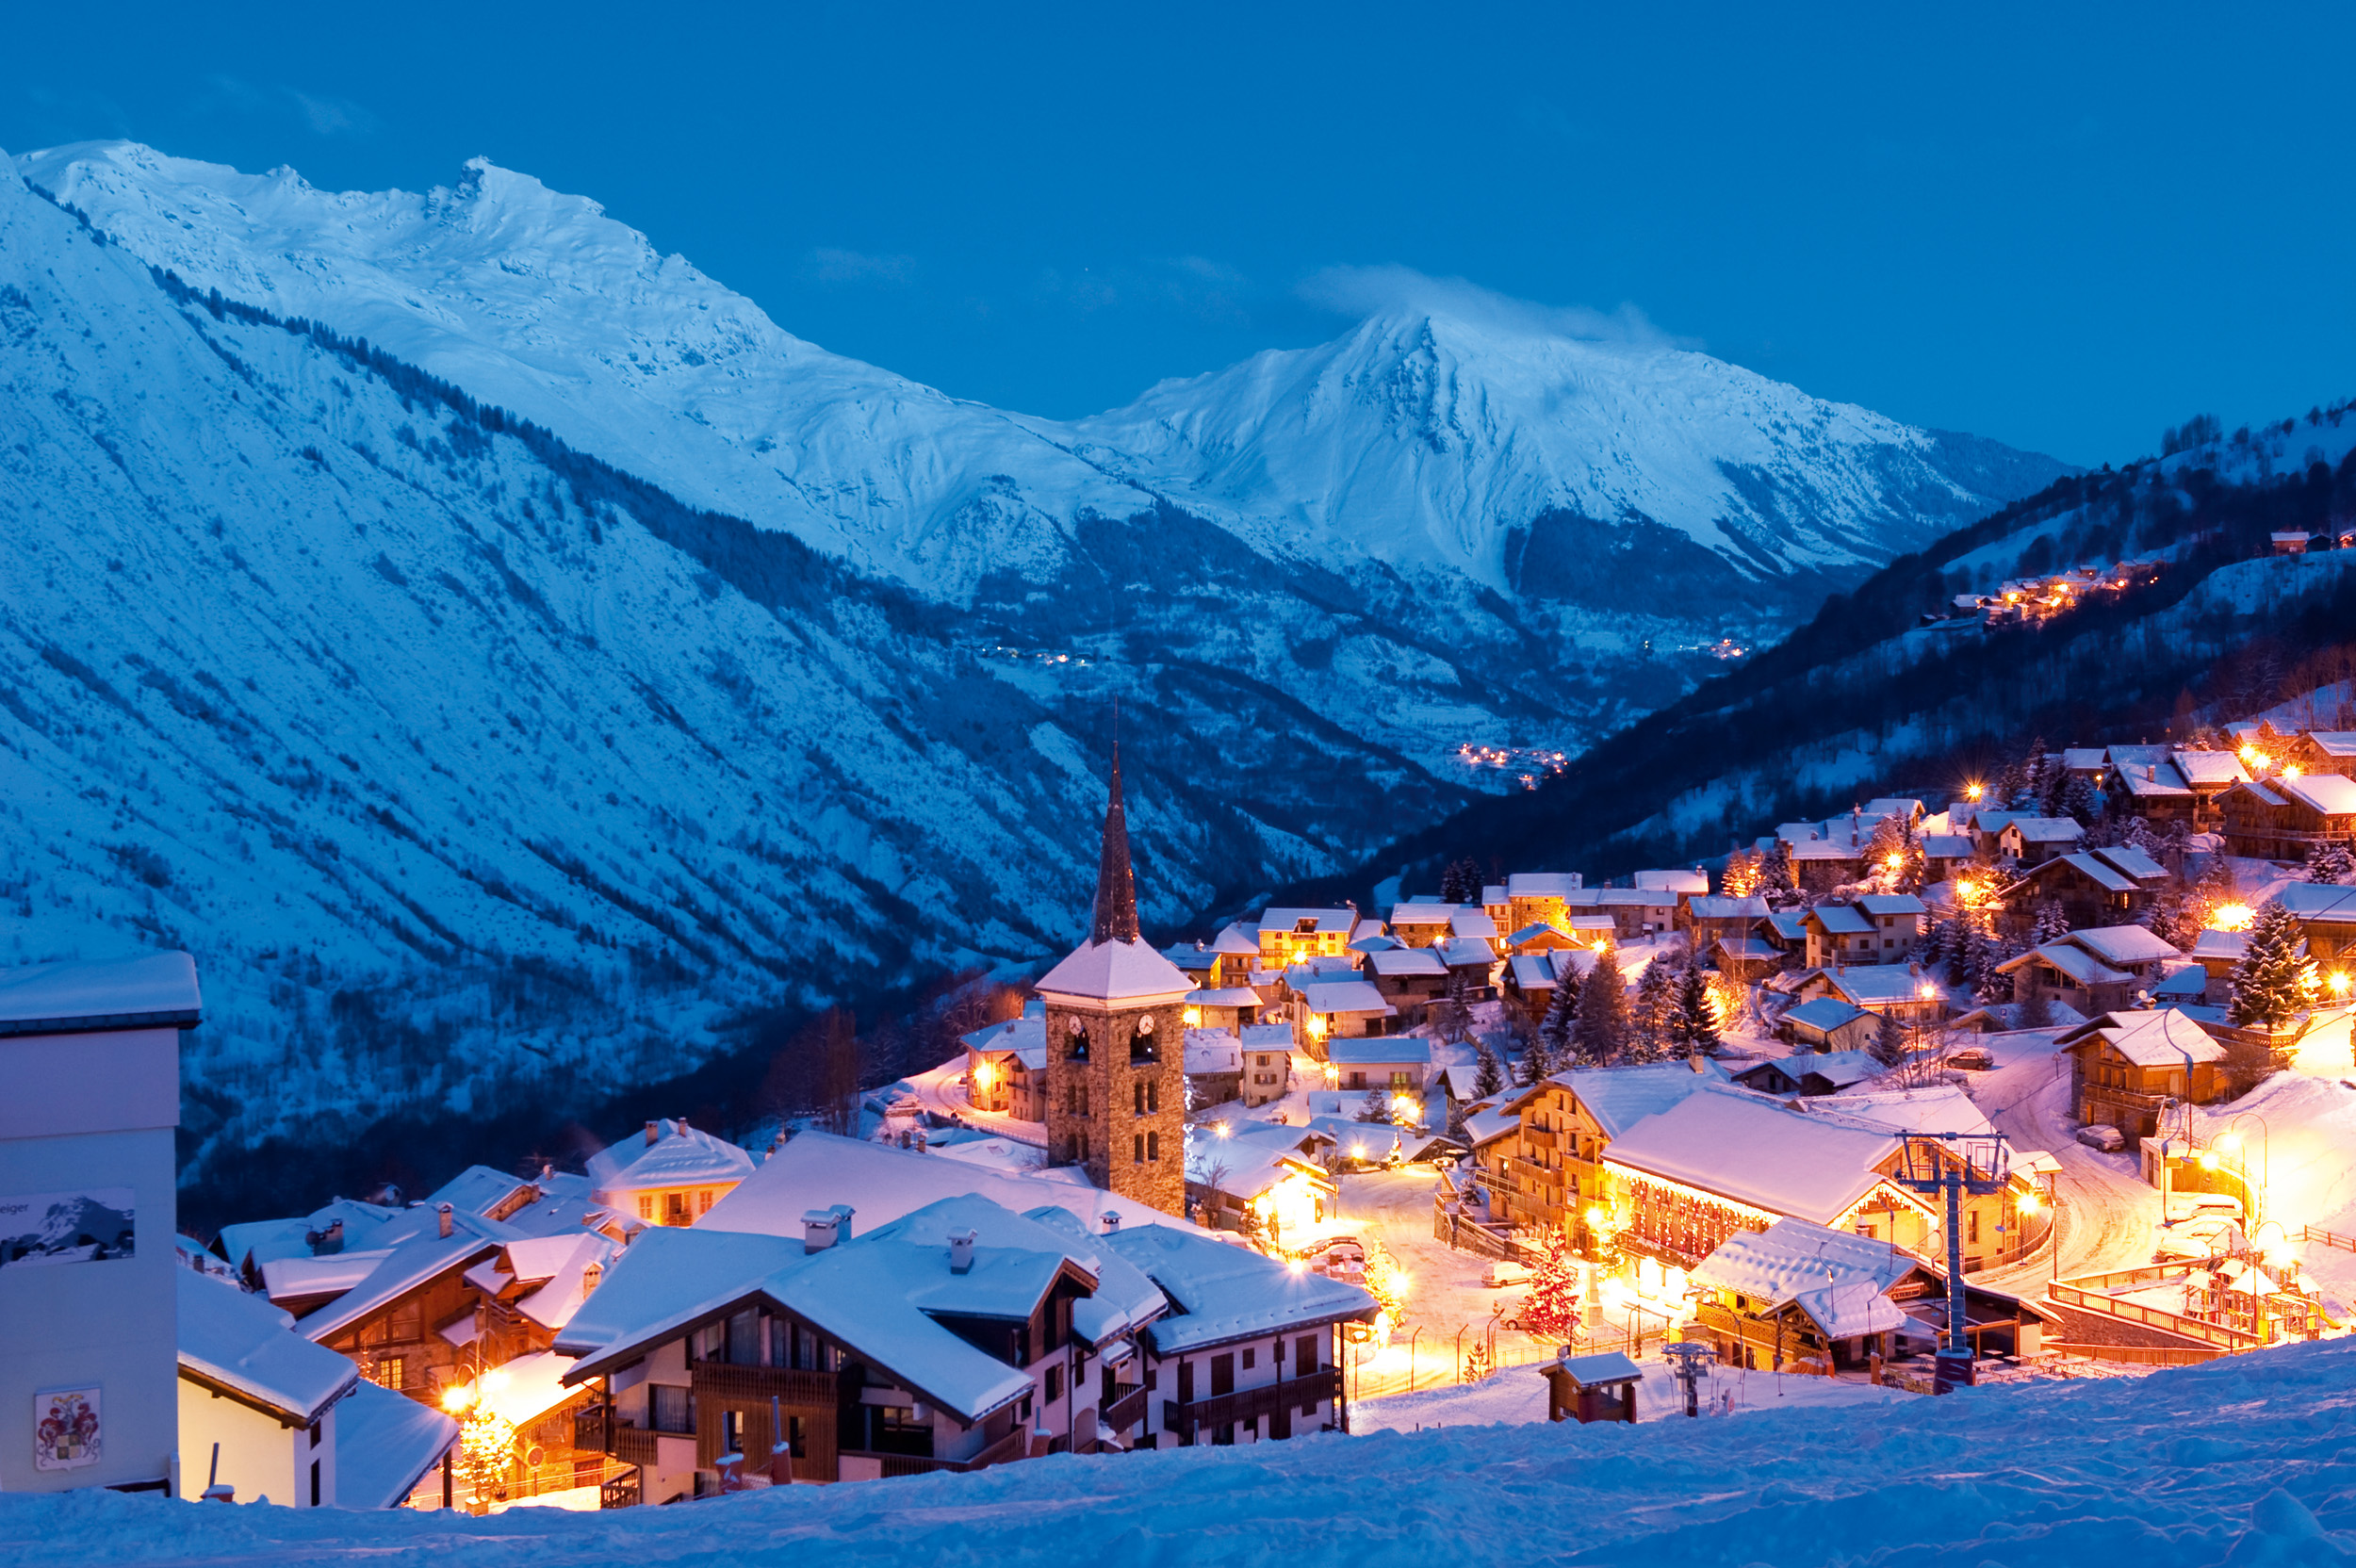 10. Three Valleys, Alps, France